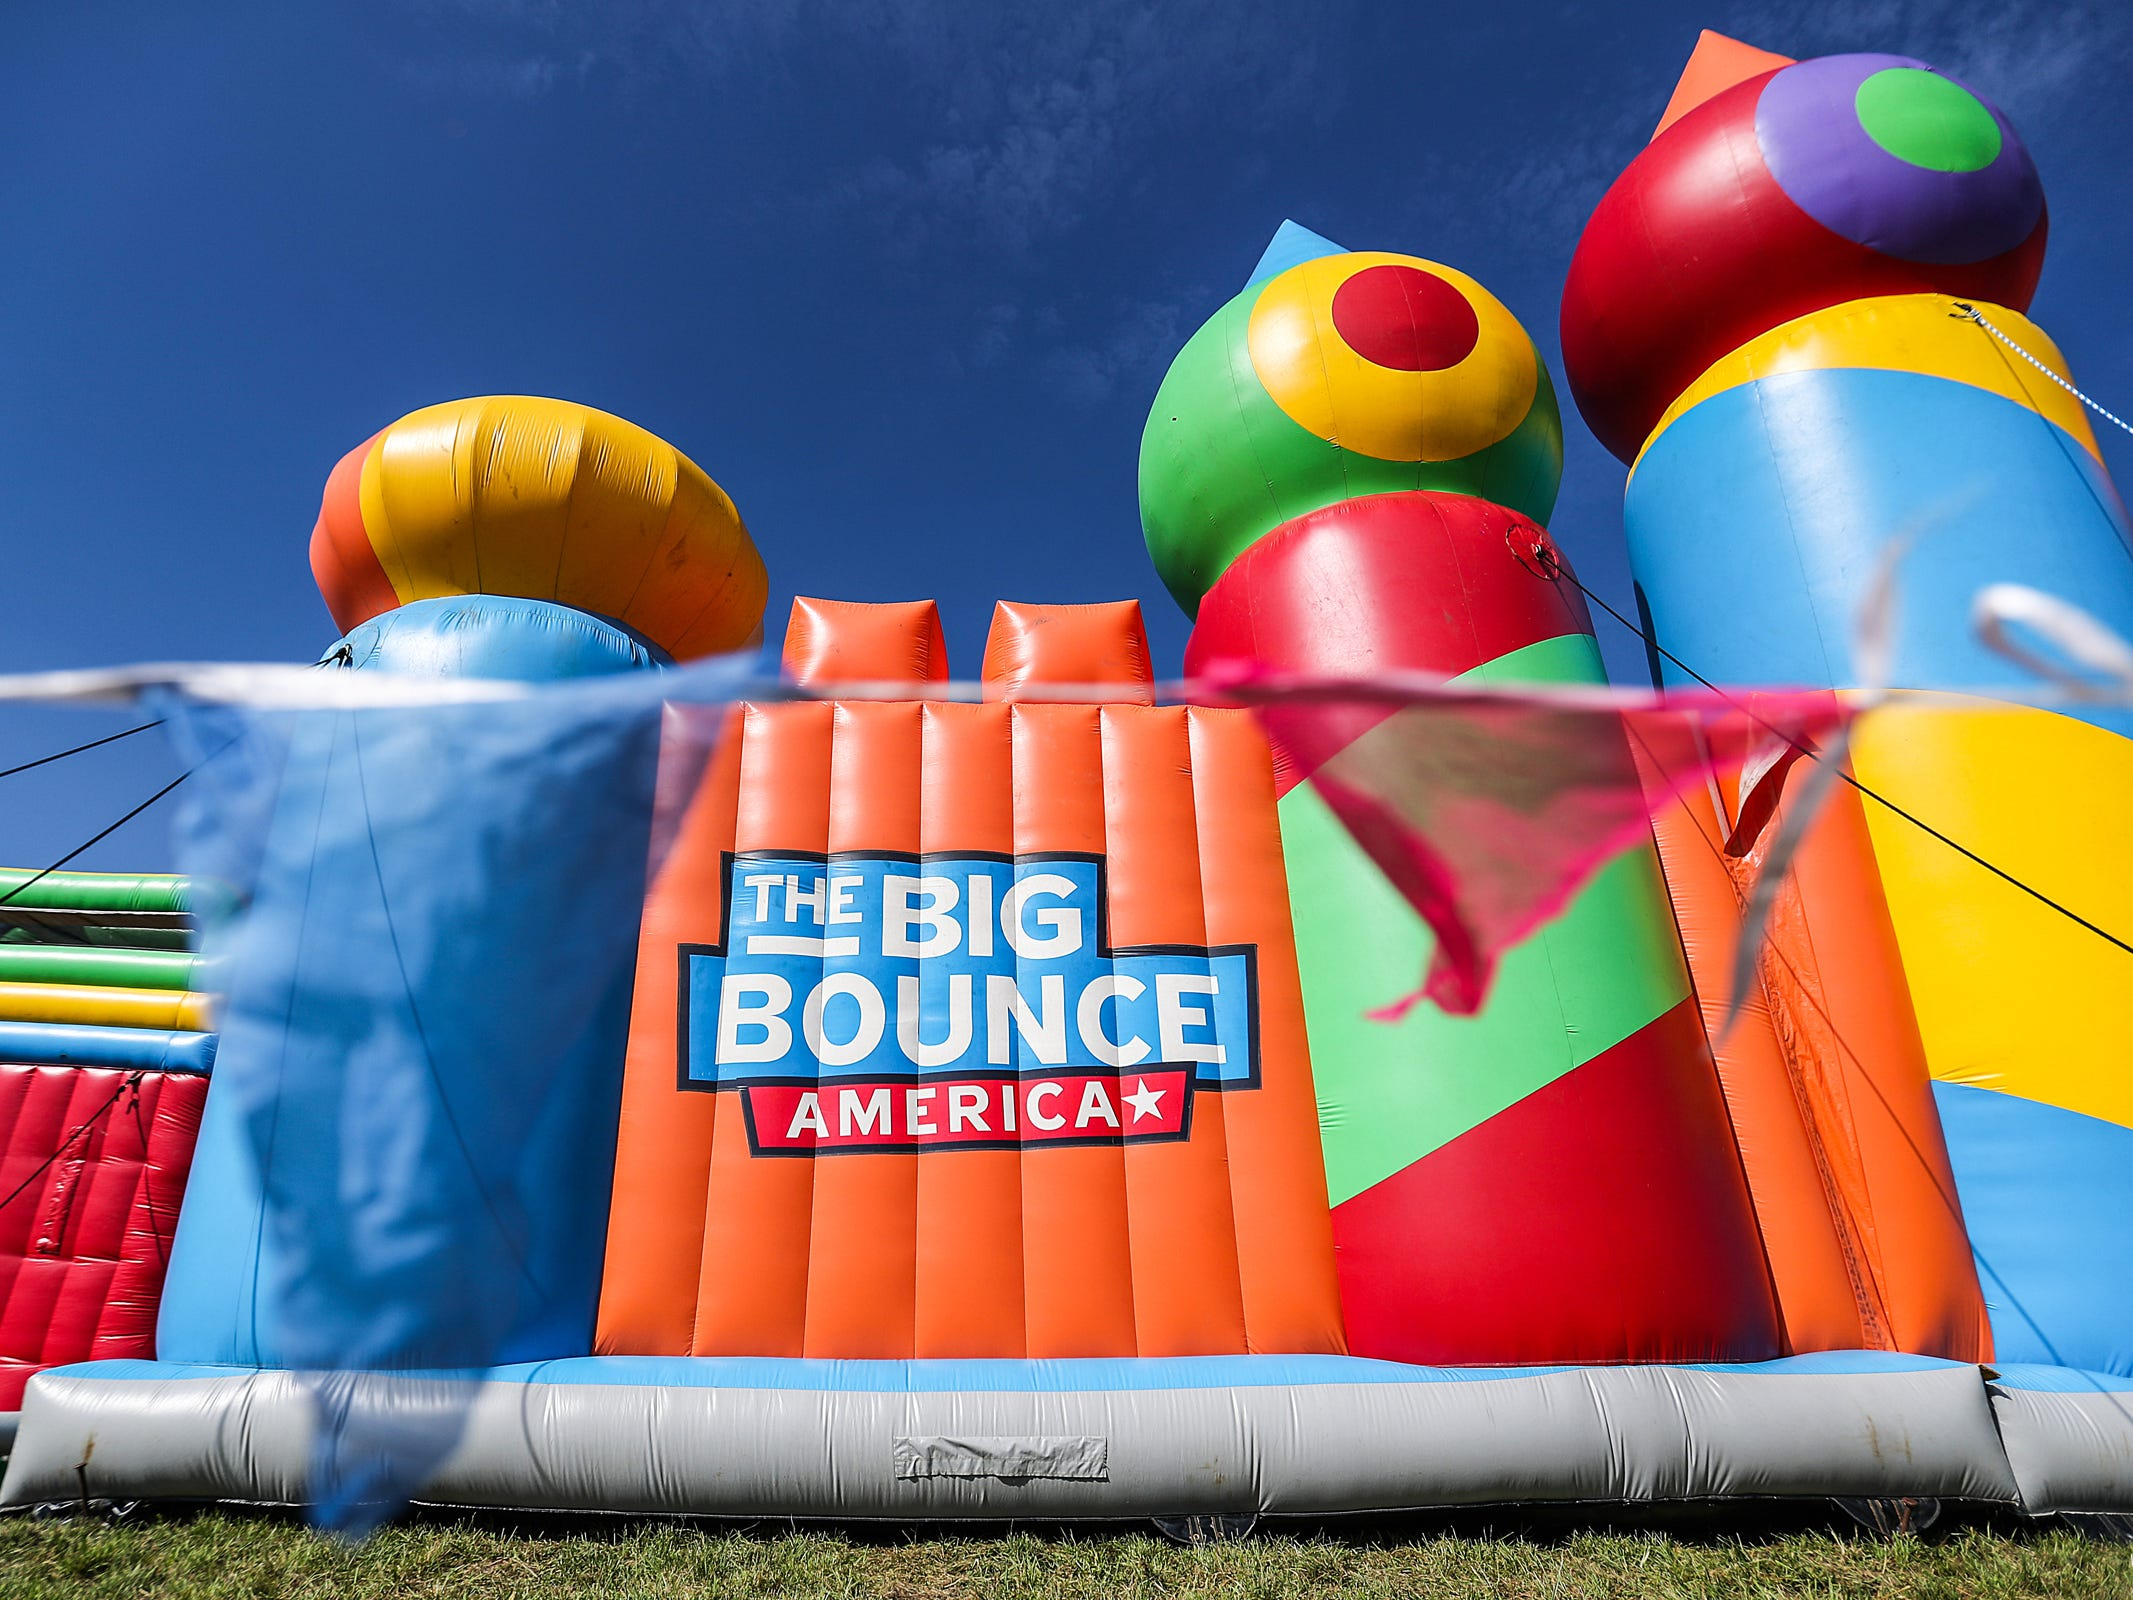 The Big Bounce America inflatable attraction at Waterman's Family Farm in Indianapolis seen Friday, Sept. 14, 2018. The world's largest bounce house covers 10,000 square feet and will be in Indy though September 16.